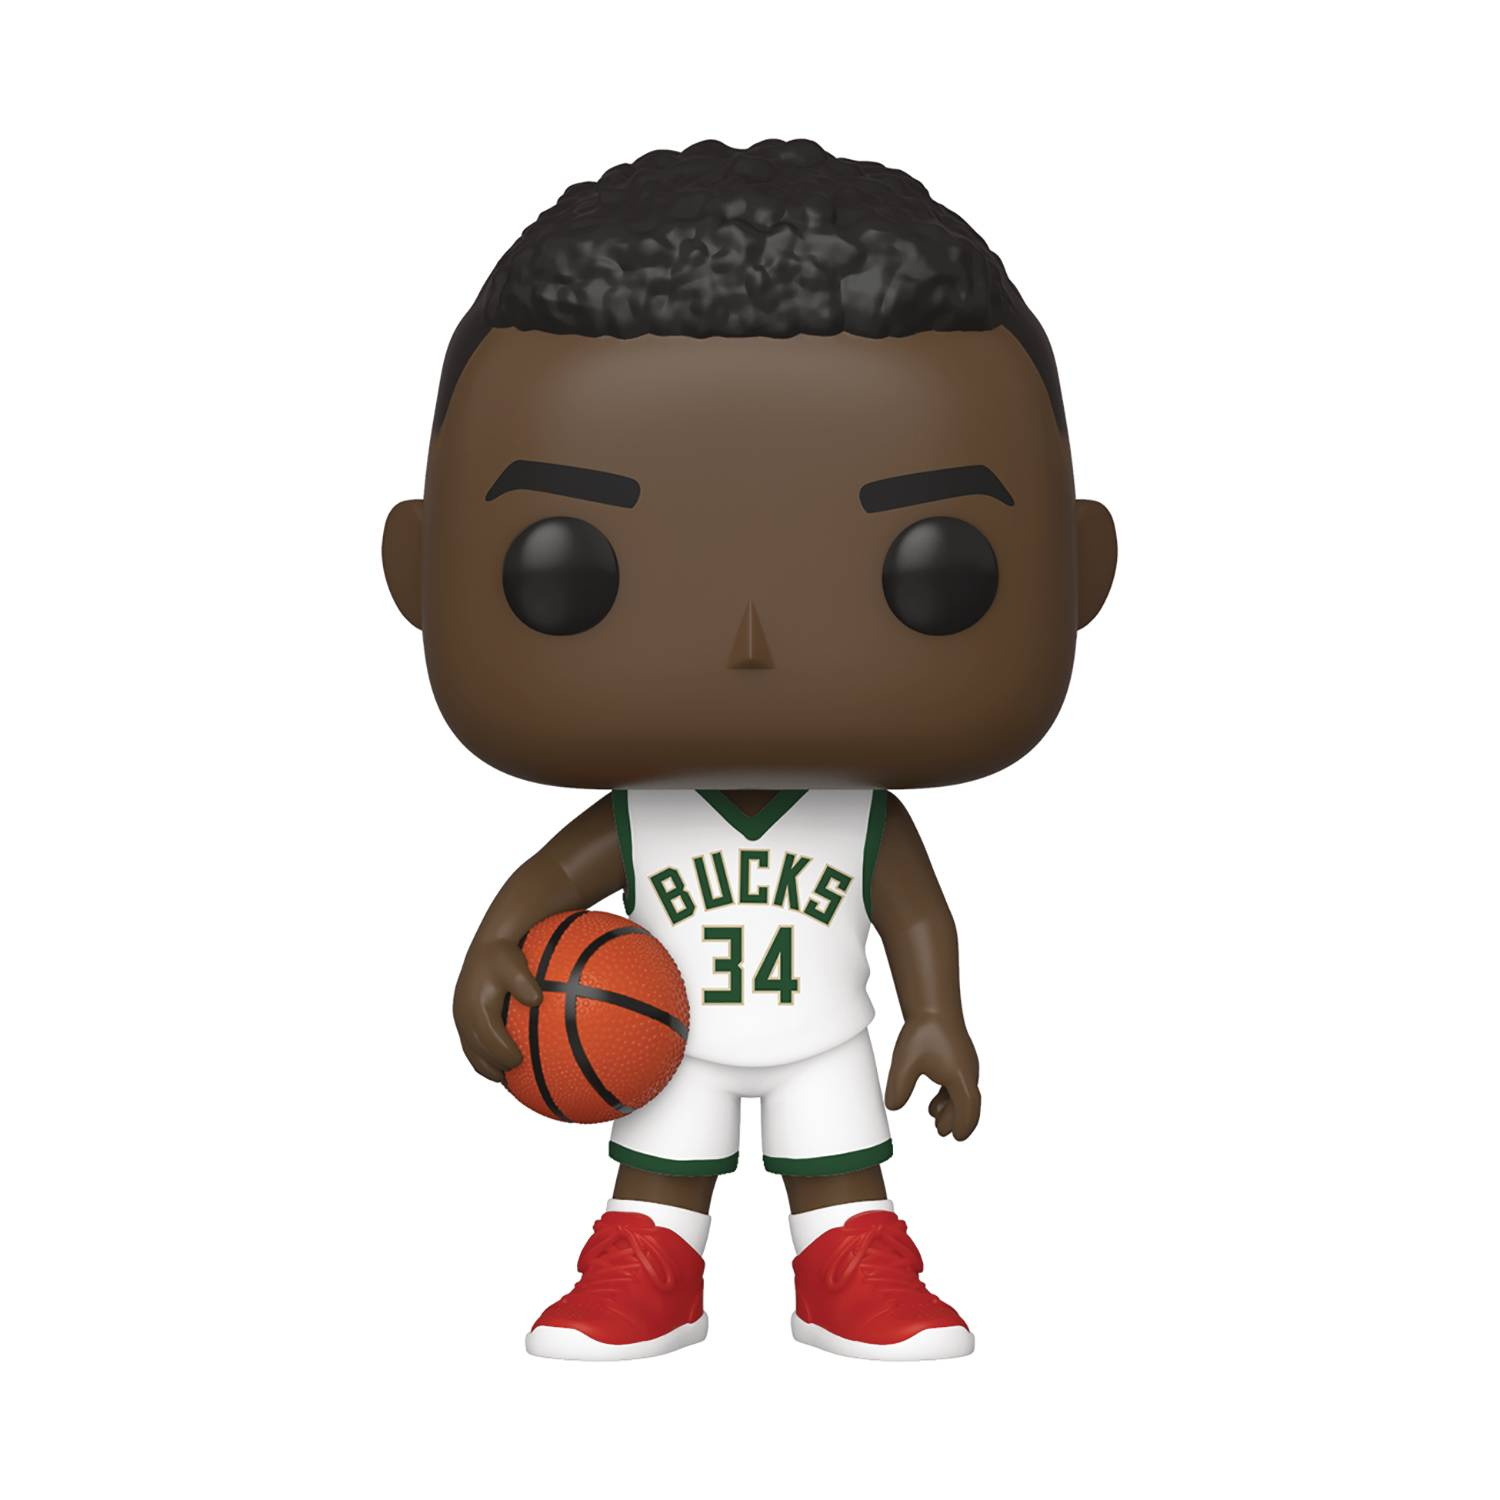 POP NBA BUCKS GIANNIS ANTETOKOUNMPO VIN FIG